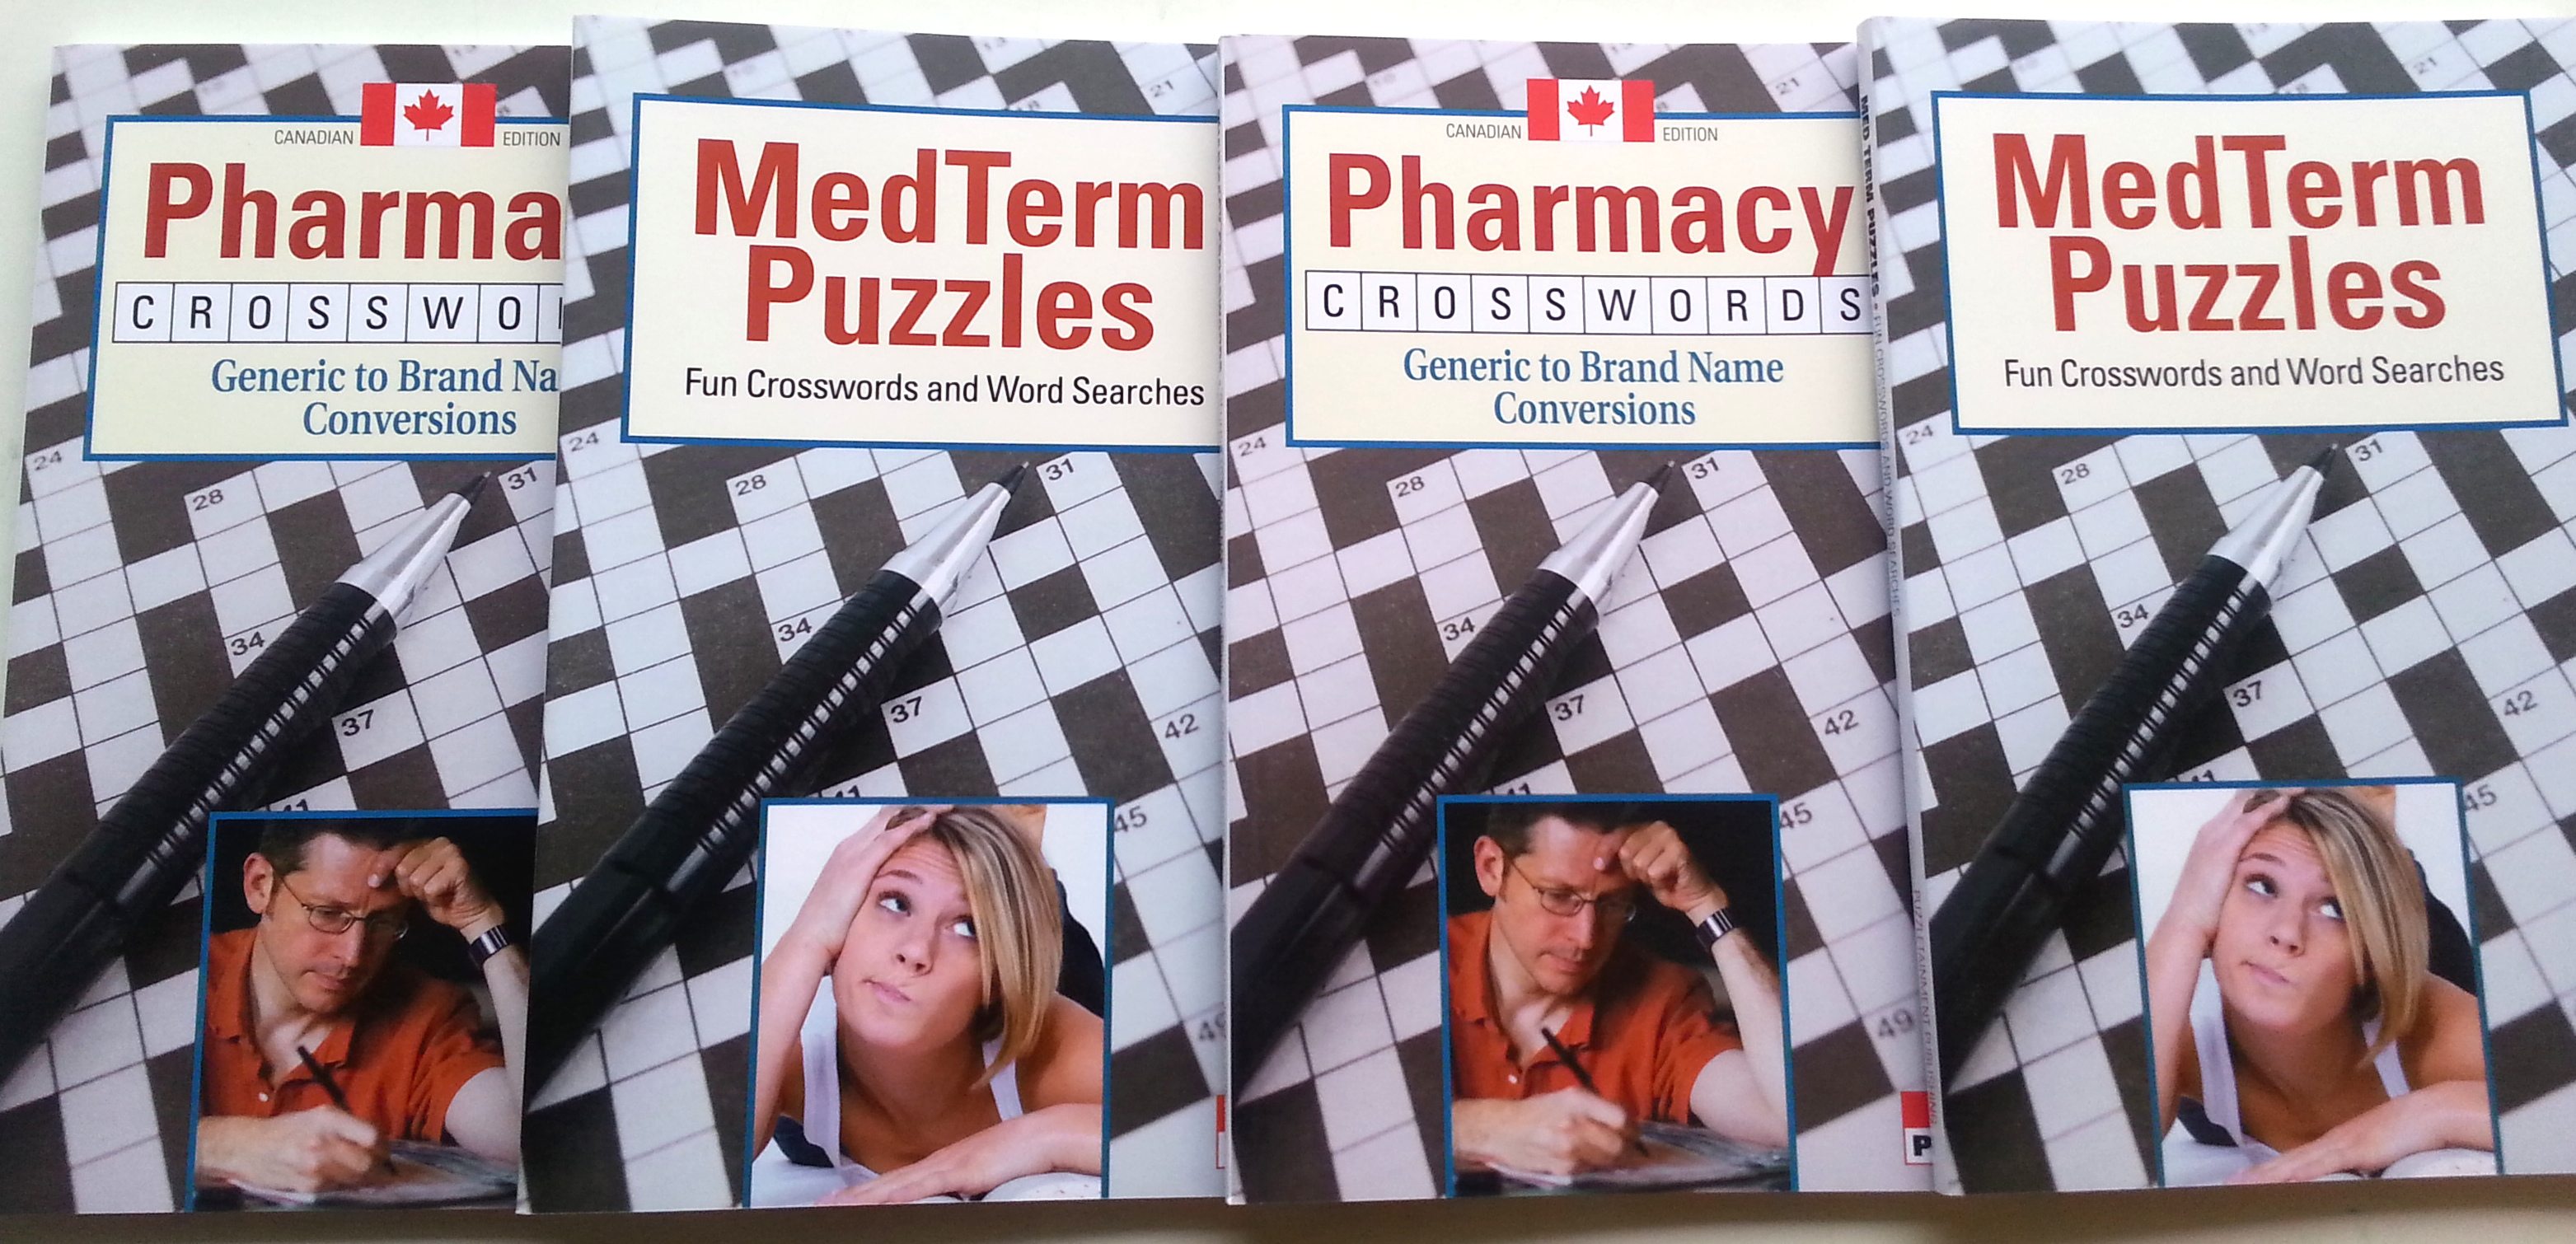 Pharmacy crossword book cover header